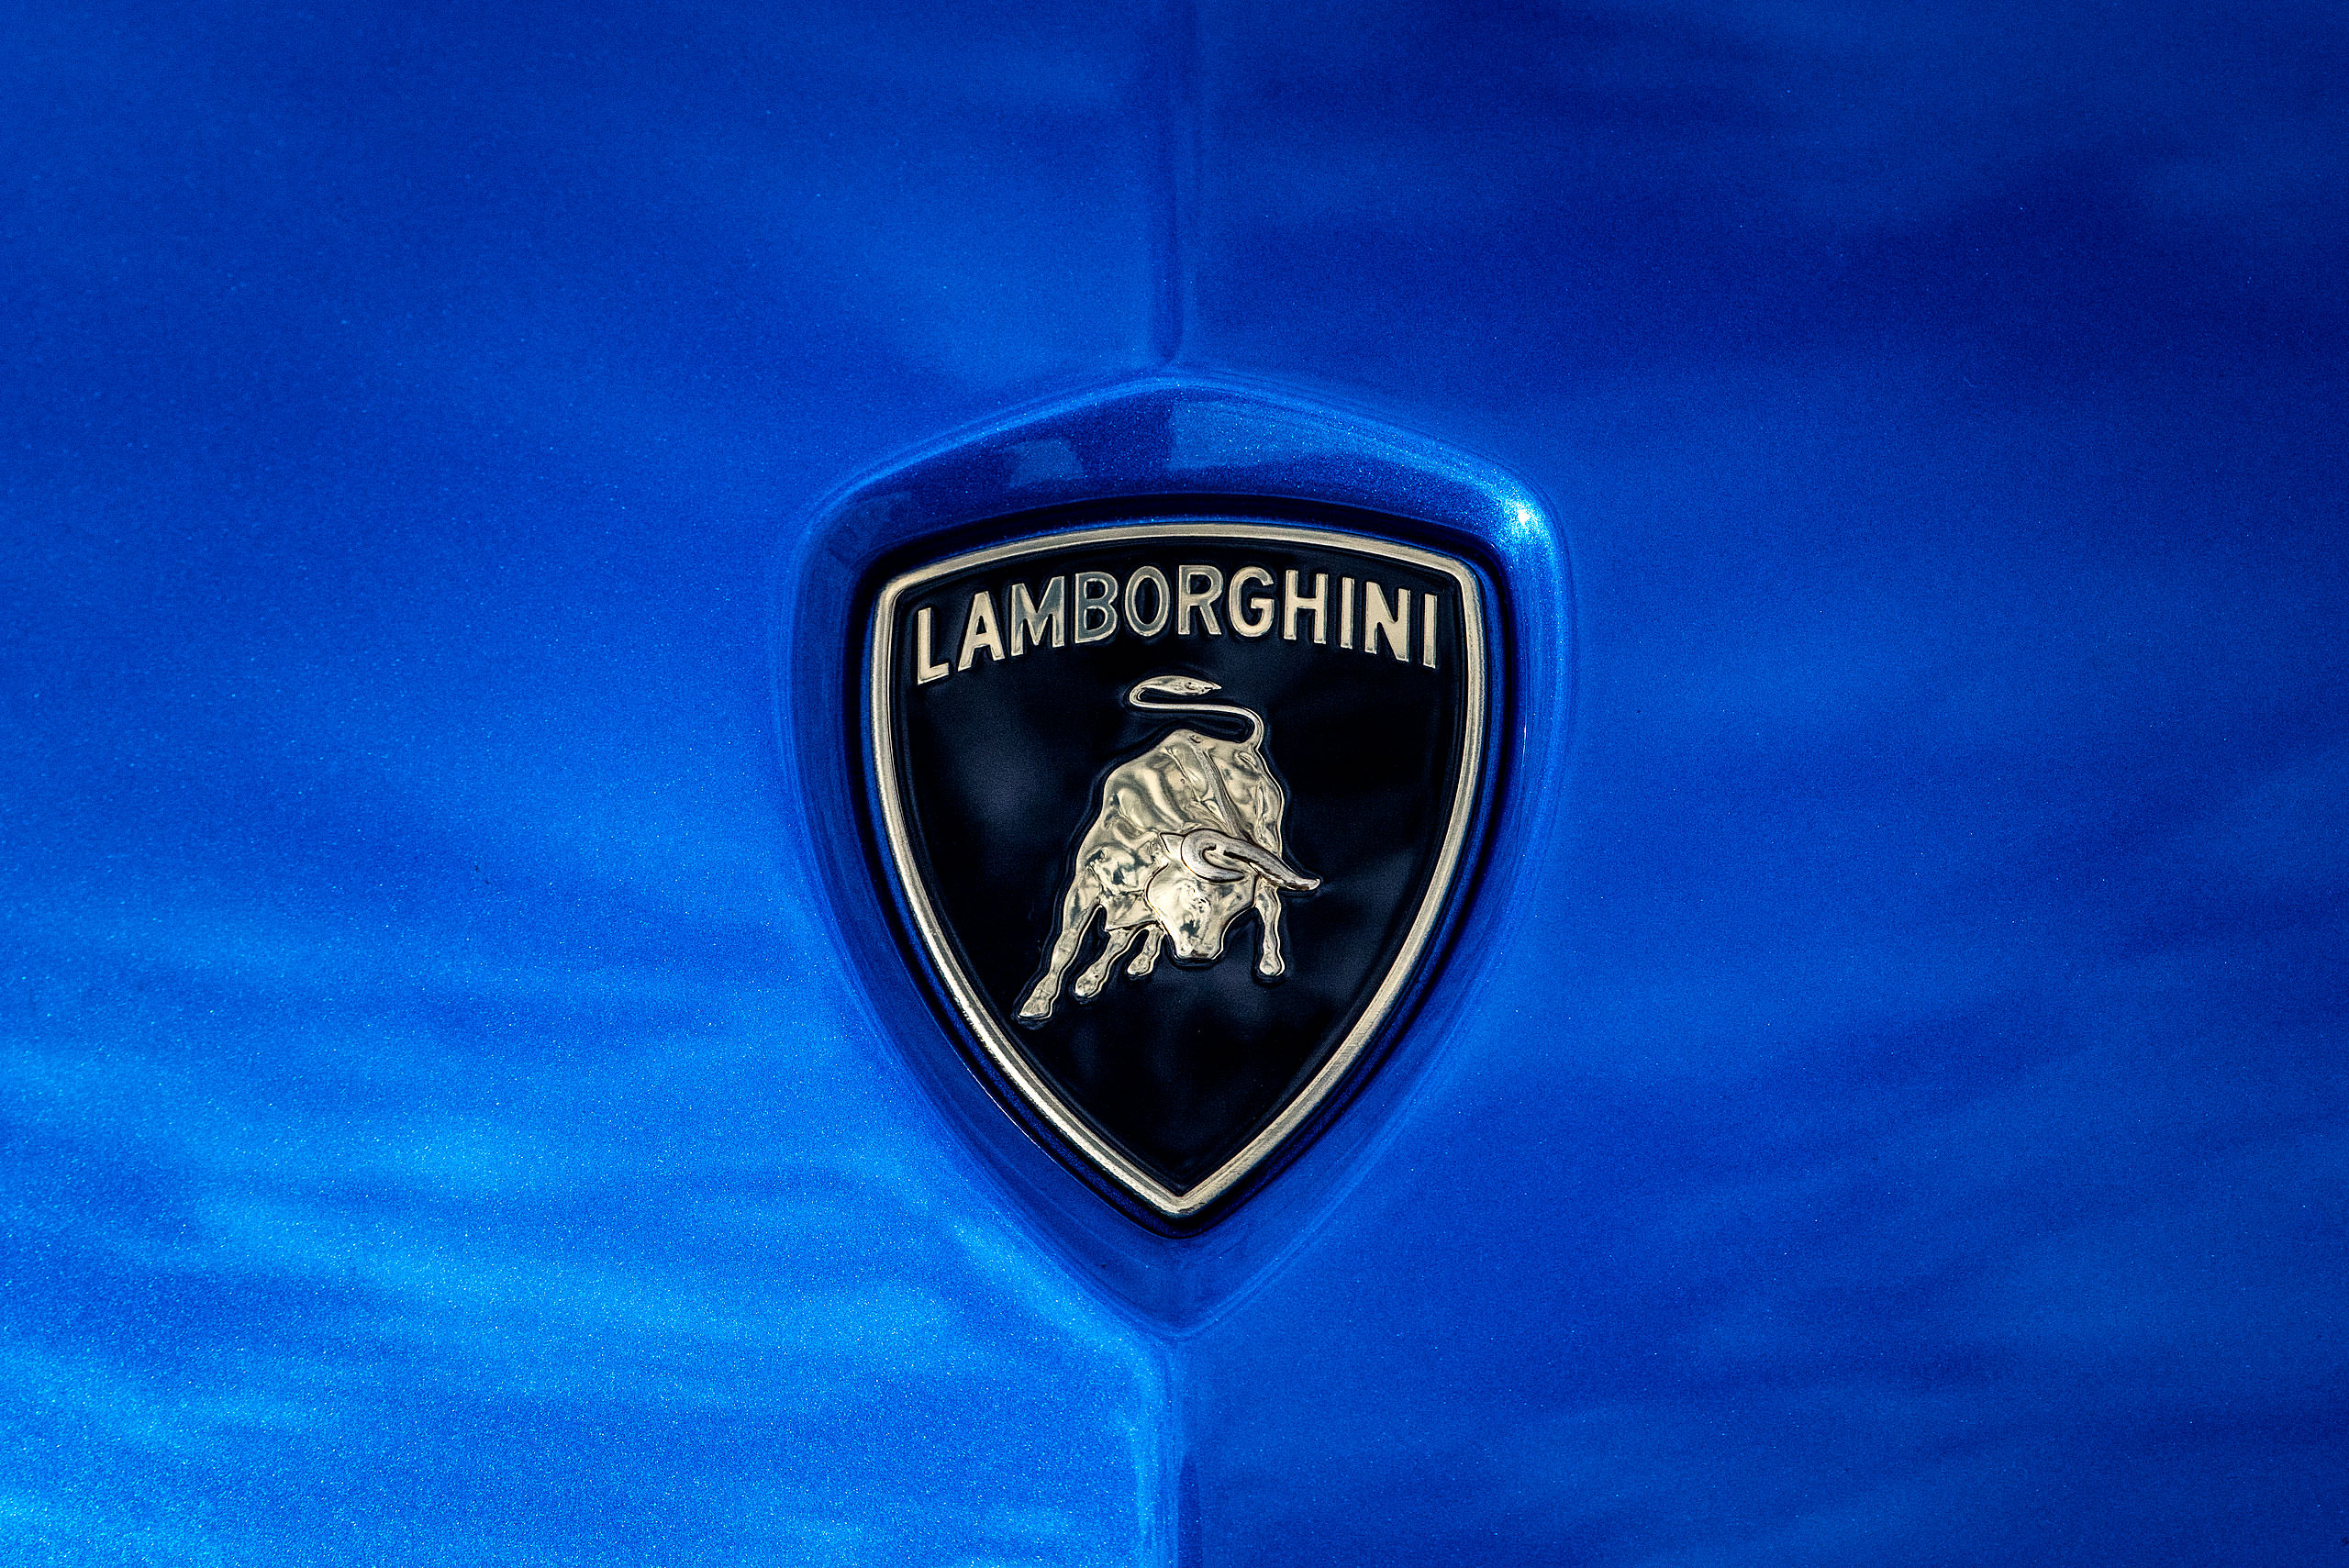 metallic blue Lamborghini aventador close up photograph of the decal